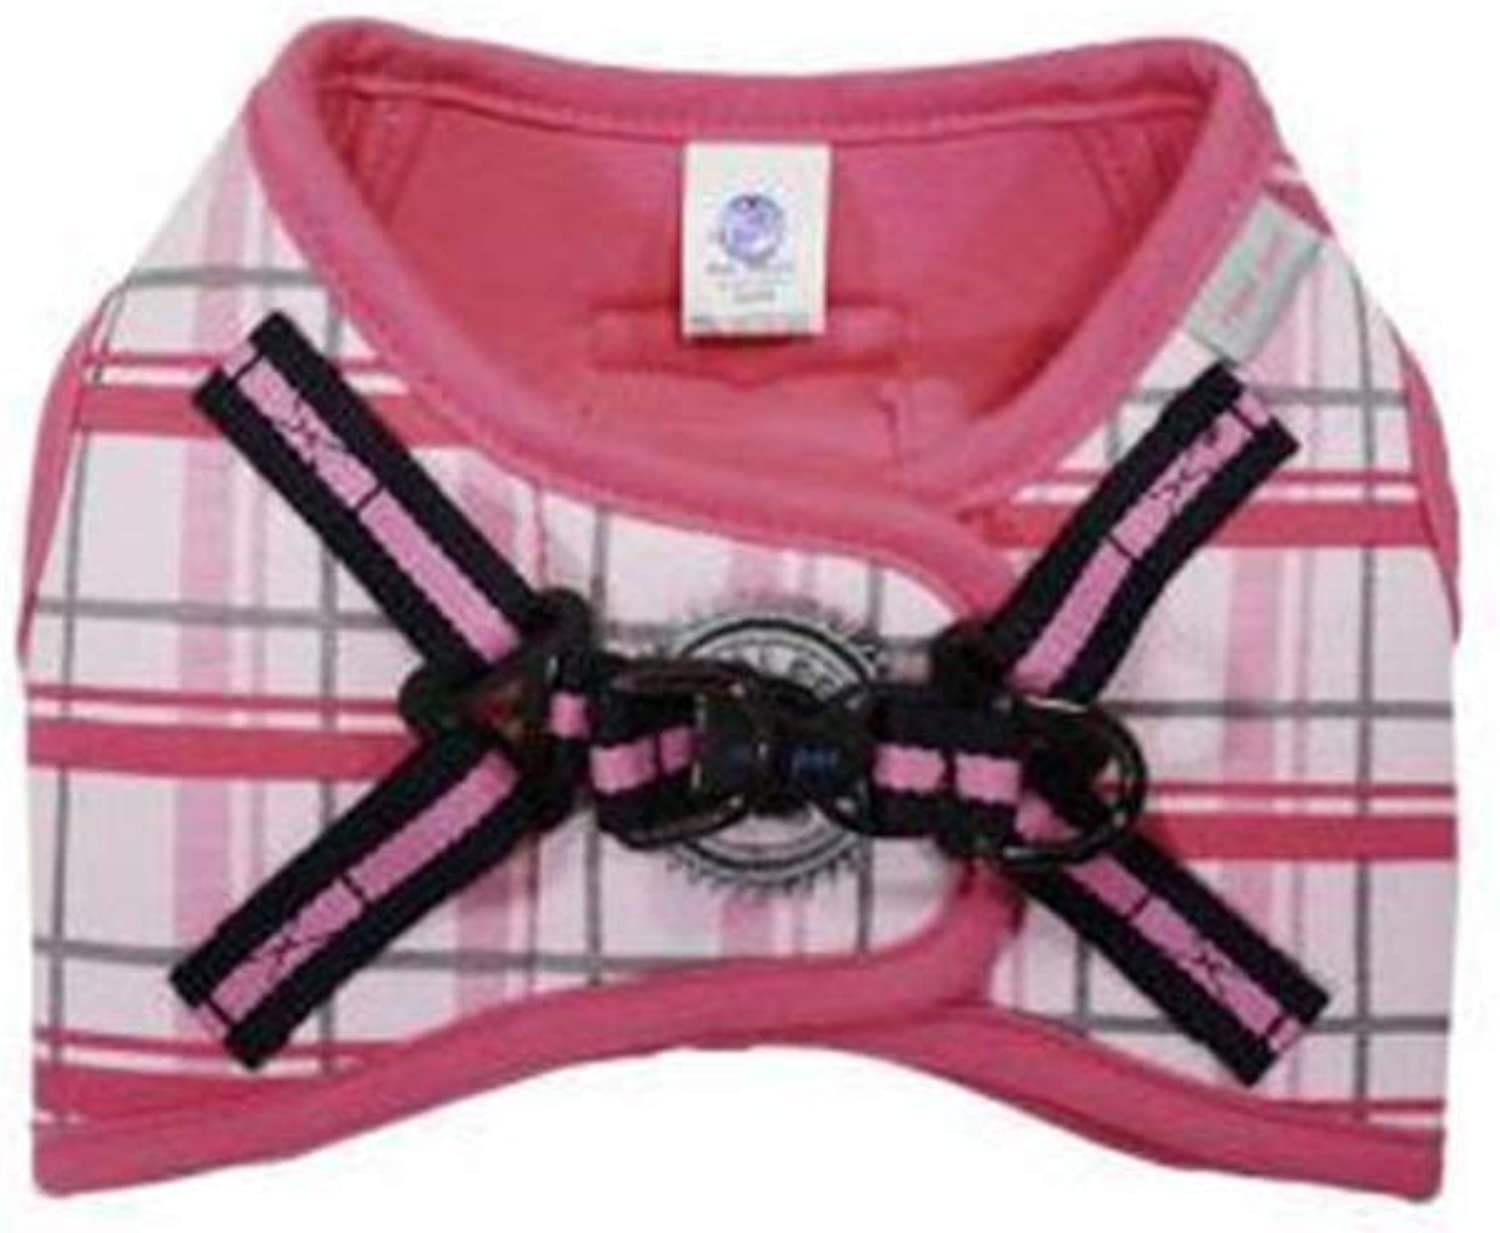 Dog Vest Harness, Chest Strap Outdoor Training Series Pet Leash Teddy For Small Medium Dogs Teddy Cat Supplies Safety Buffer Vest (color   PINK, Size   M)